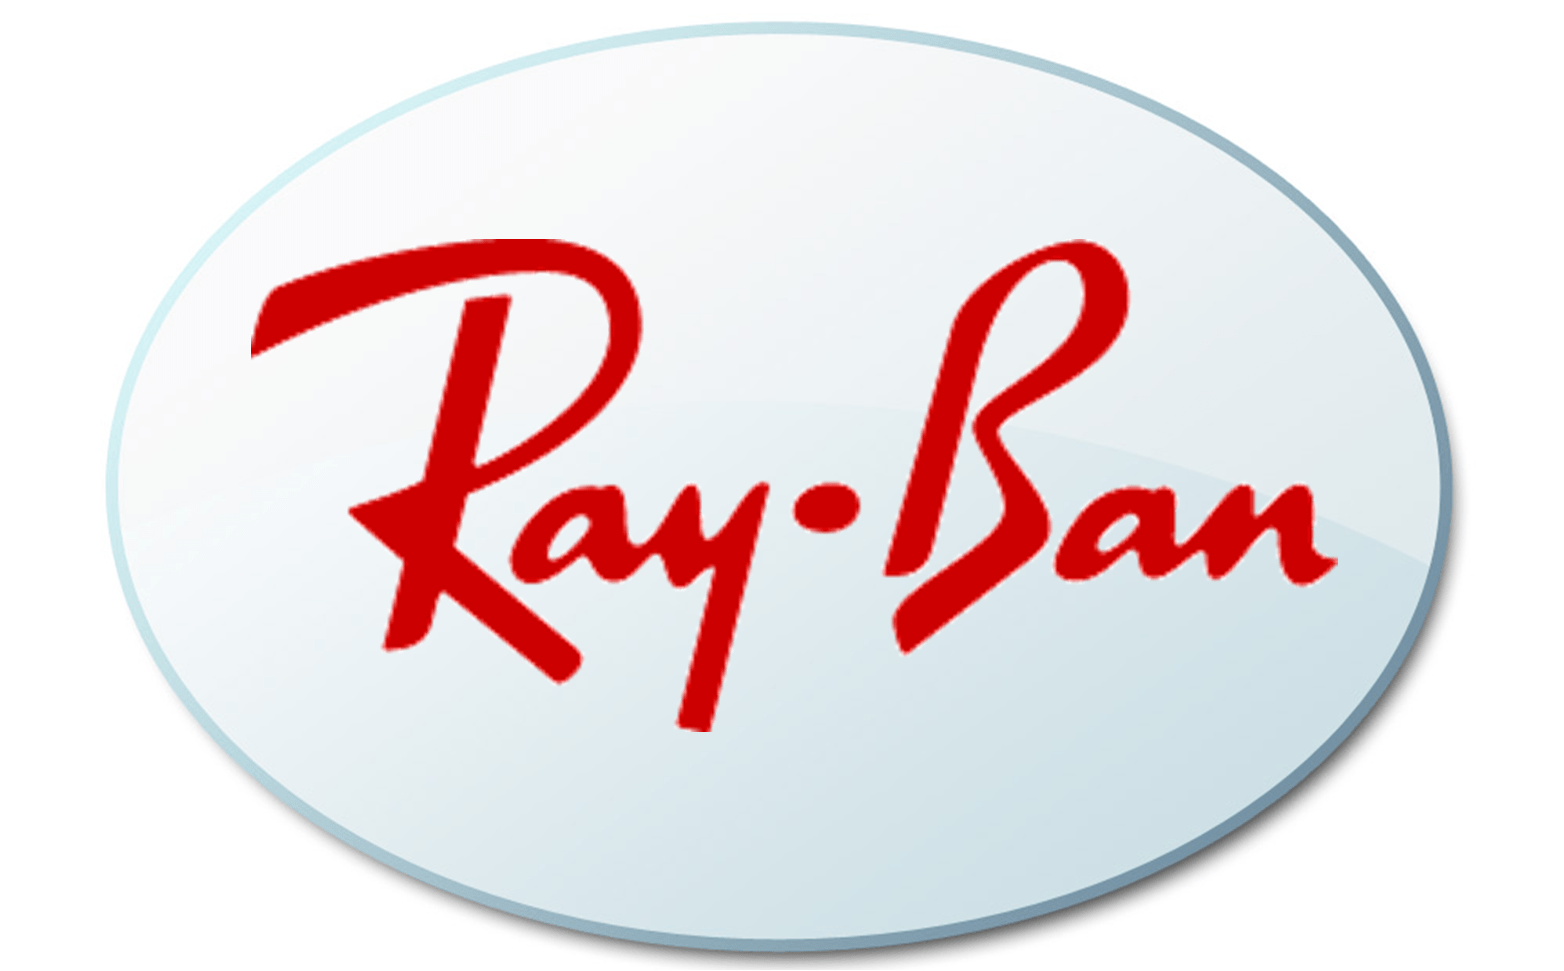 Rayban Replacement Lenses Replacement Lens Express